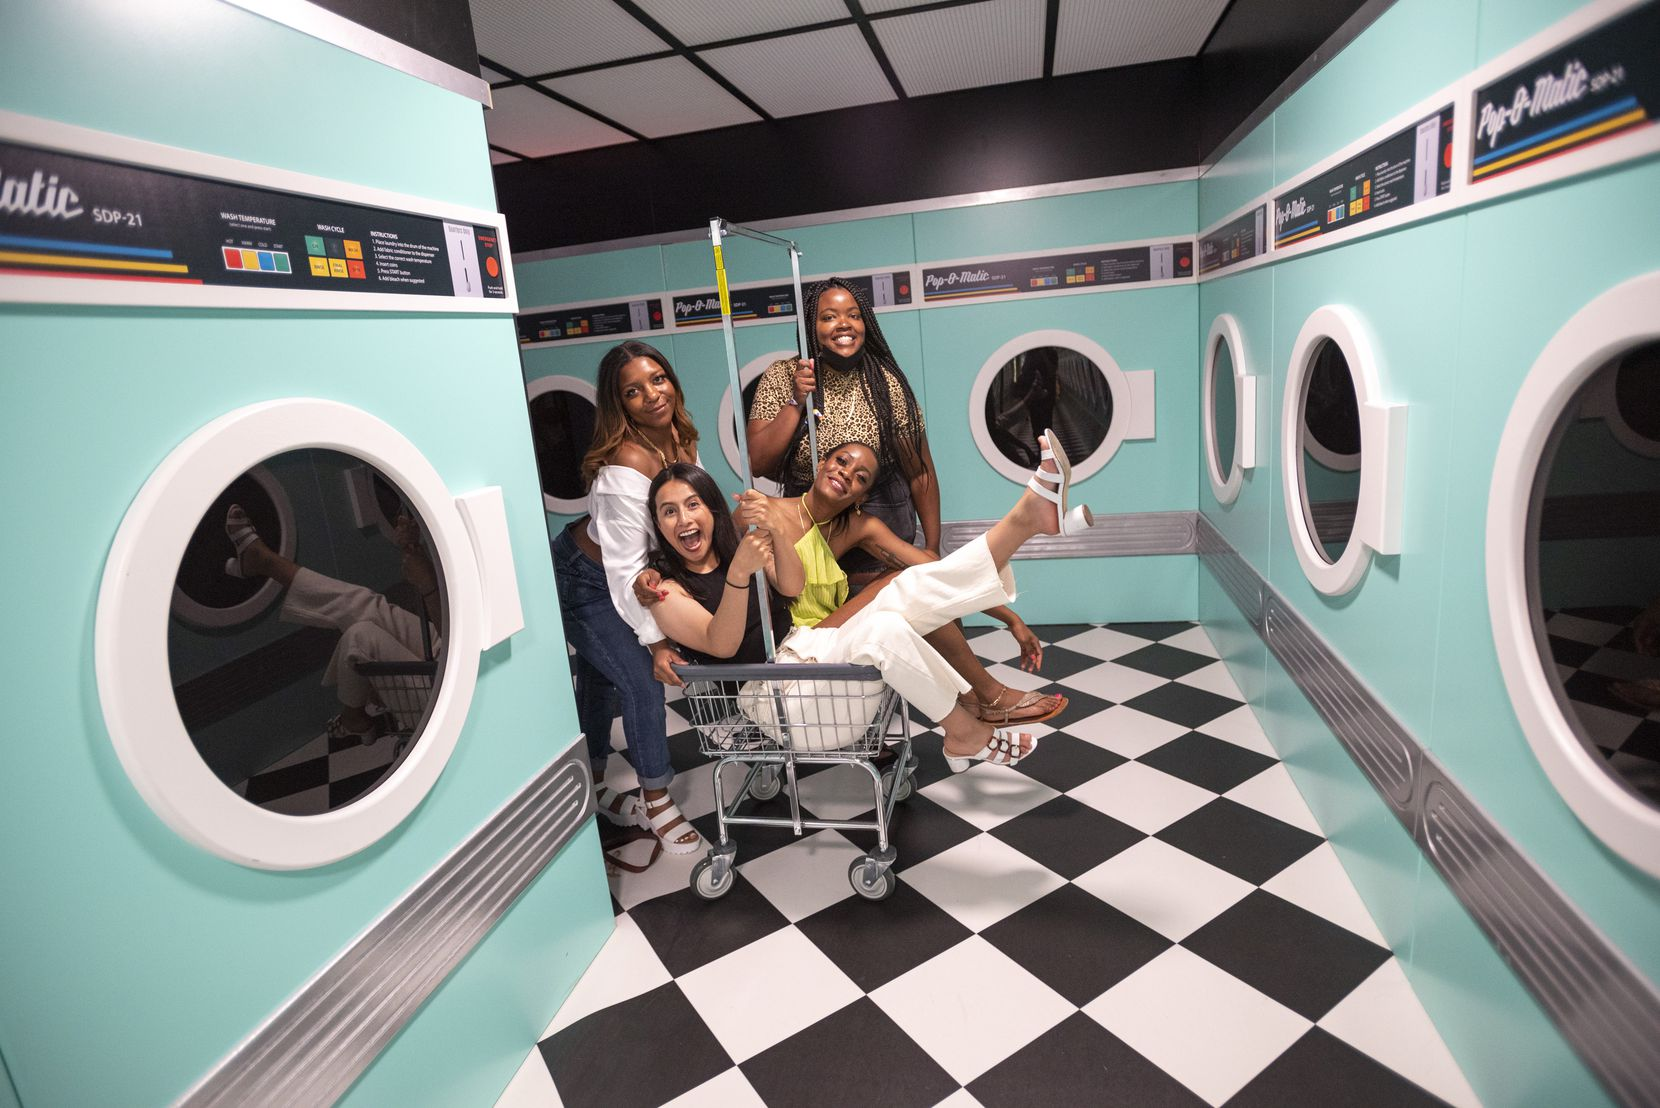 A laundromat scene puts a different spin on photos. From left are Karrington Jackson, Miriam Acosta, Veangele Williams and Morgan Evans.